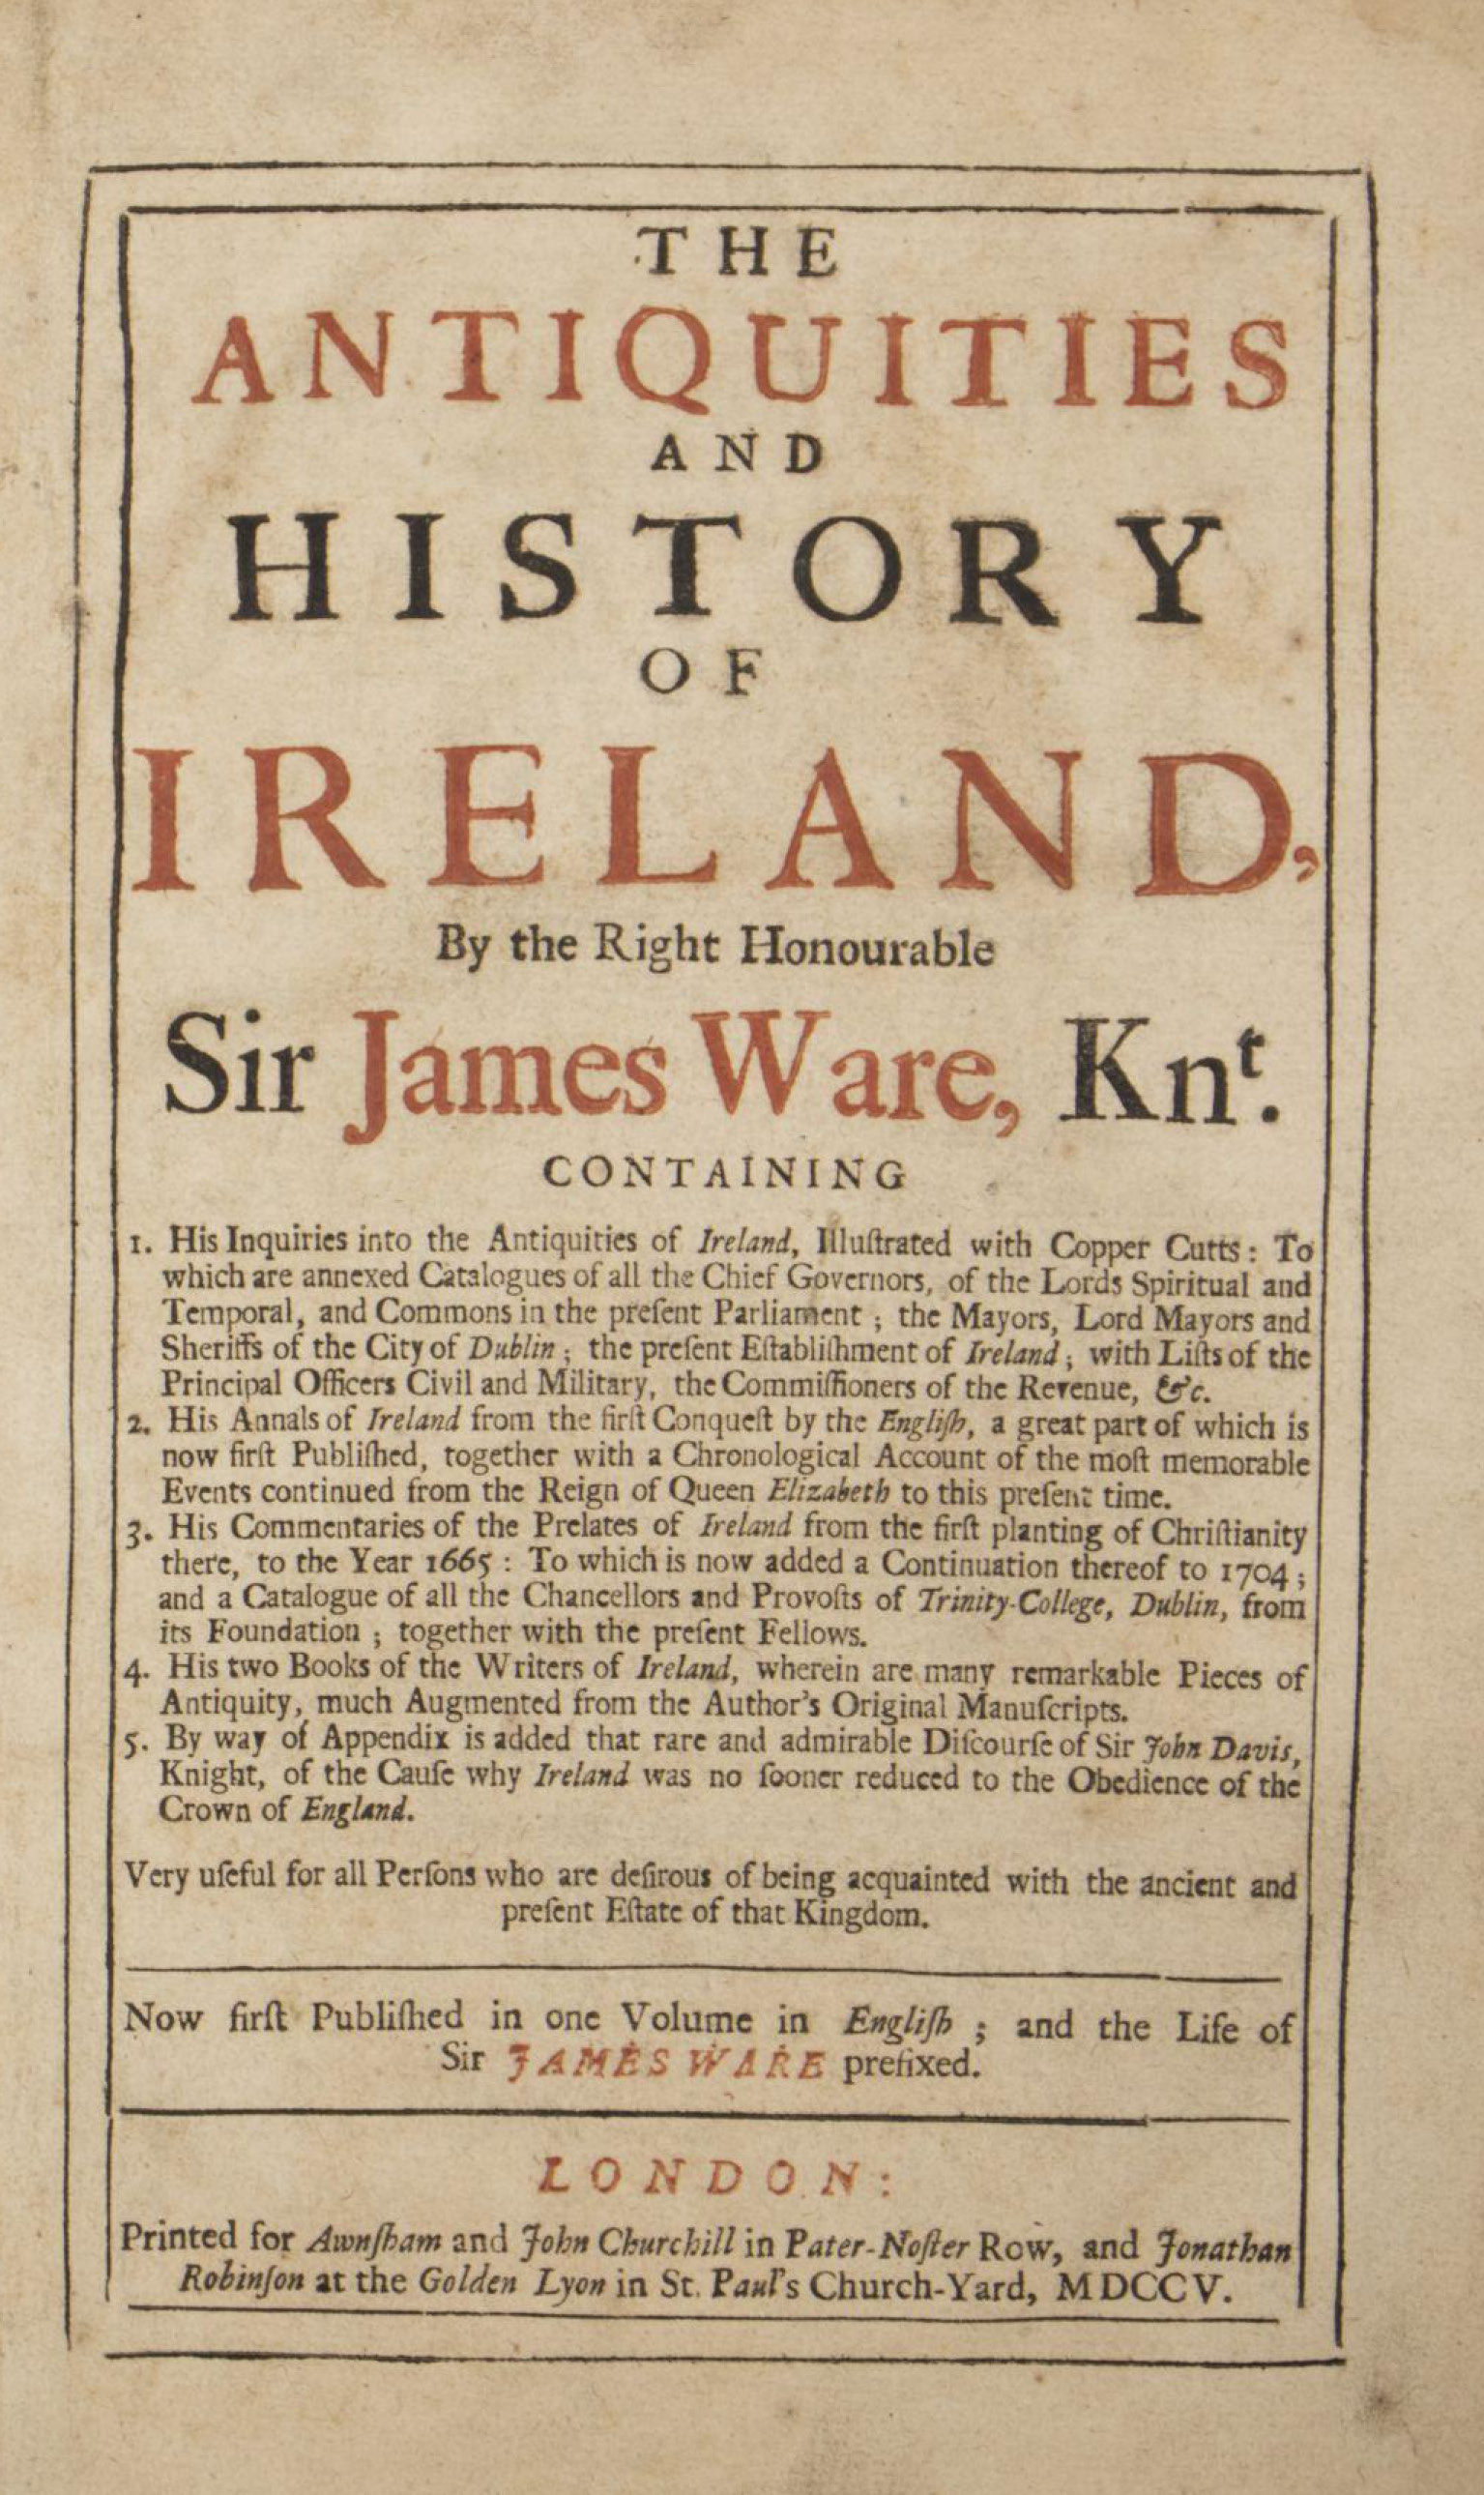 photo of The Antiquities and History of Ireland, 1705